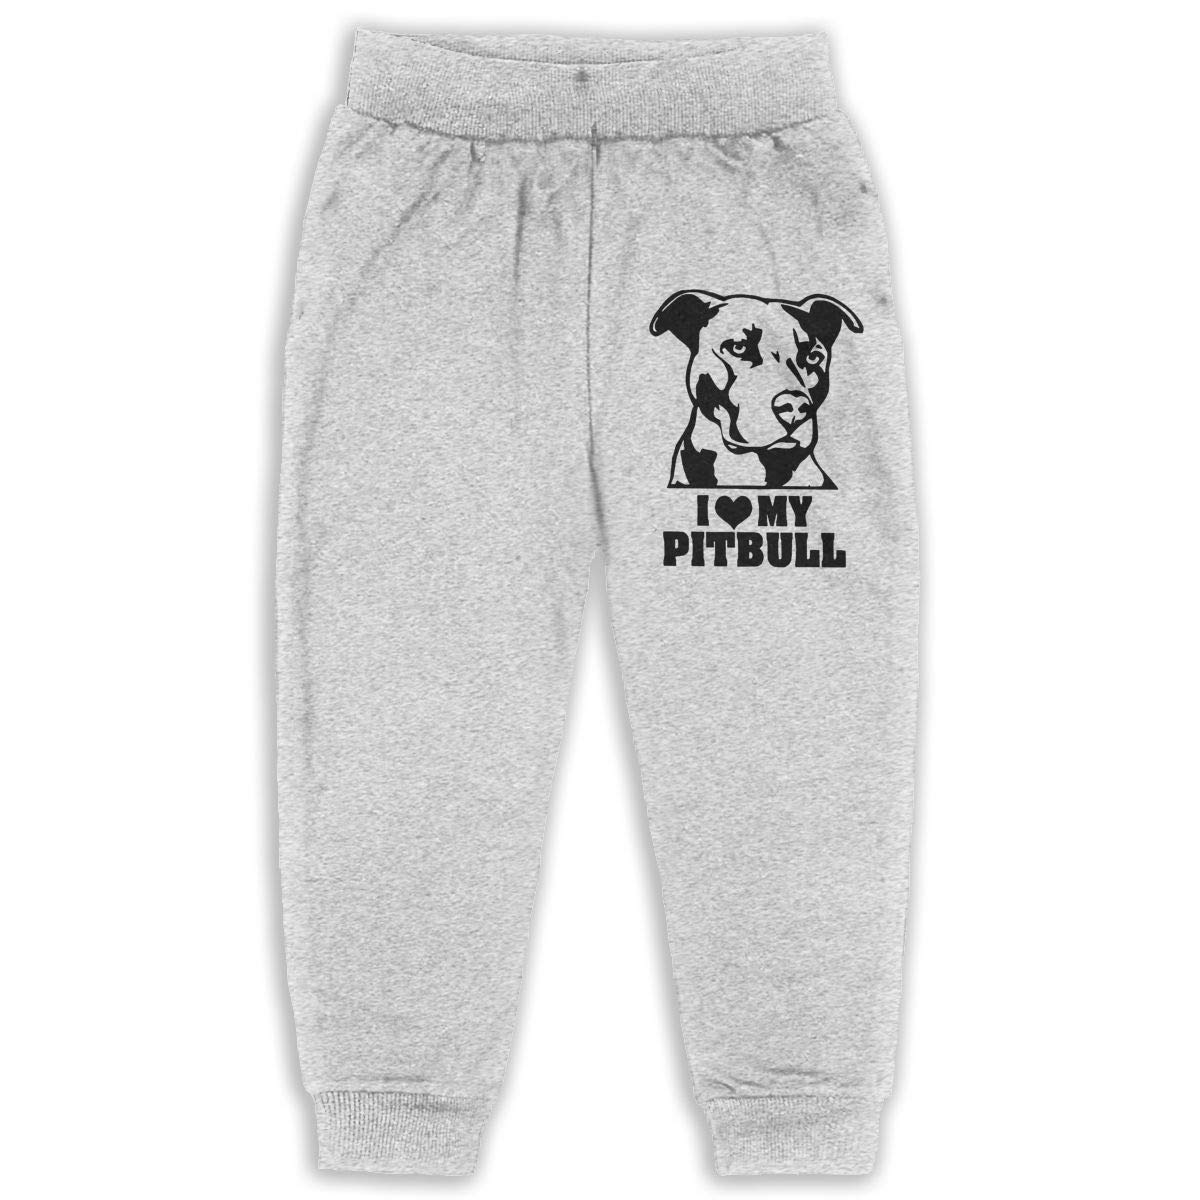 I Love My Pitbull Sweatpants for Boys /& Girls Fleece Active Joggers Elastic Pants